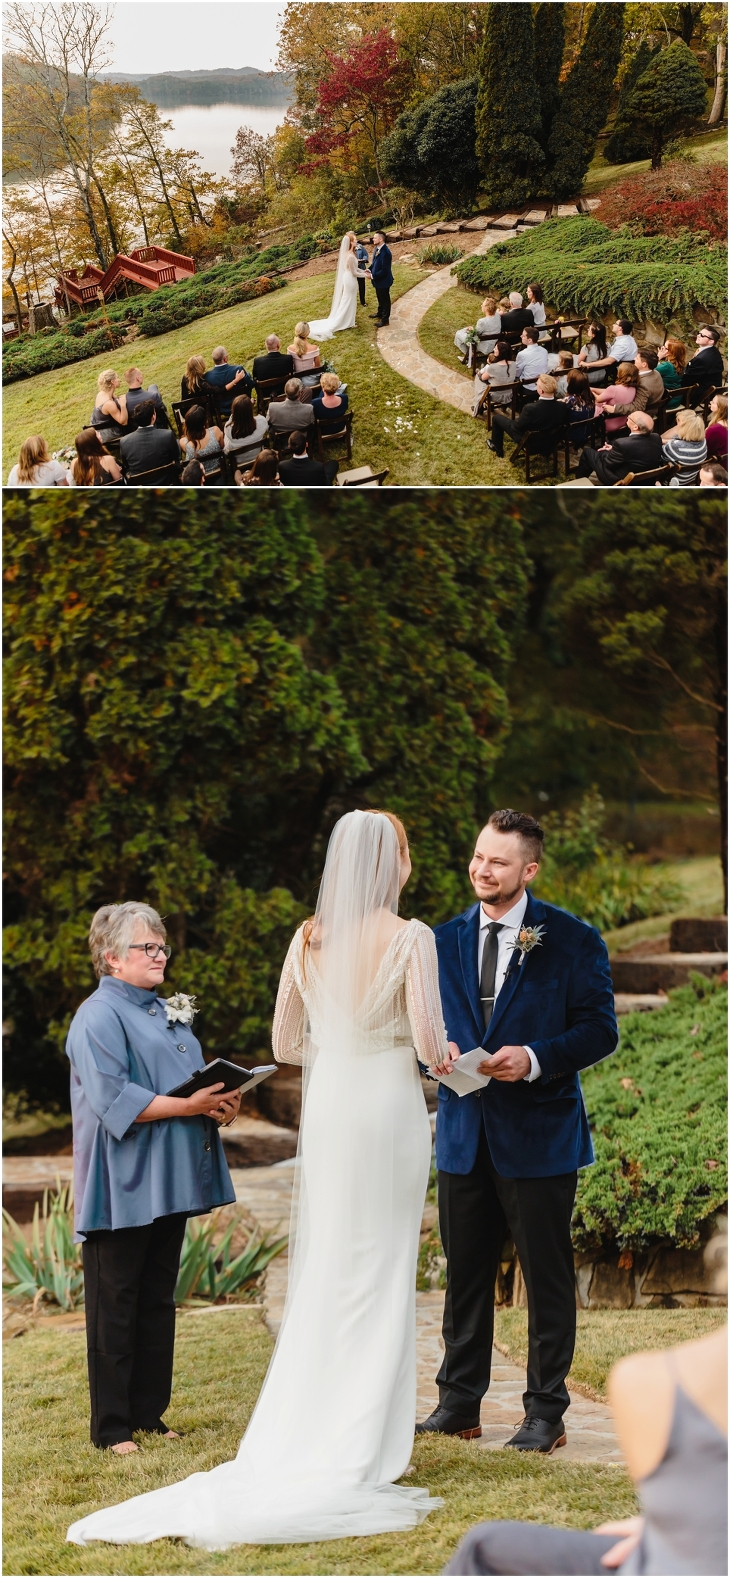 Gallaher Bend - Knoxville Wedding Venue